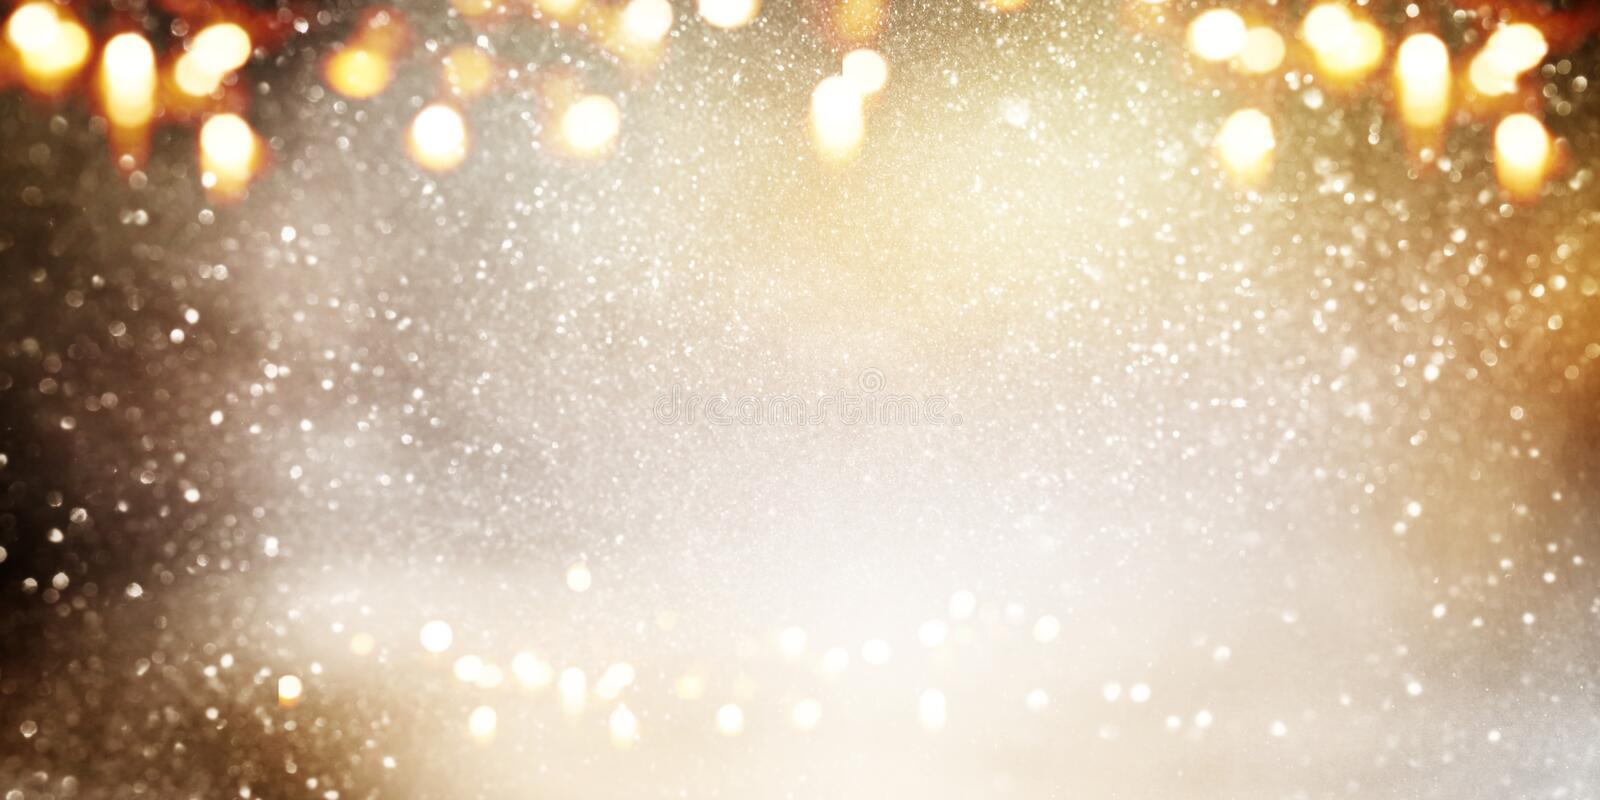 Gold And Silver Glittering Background Stock Image Image Of